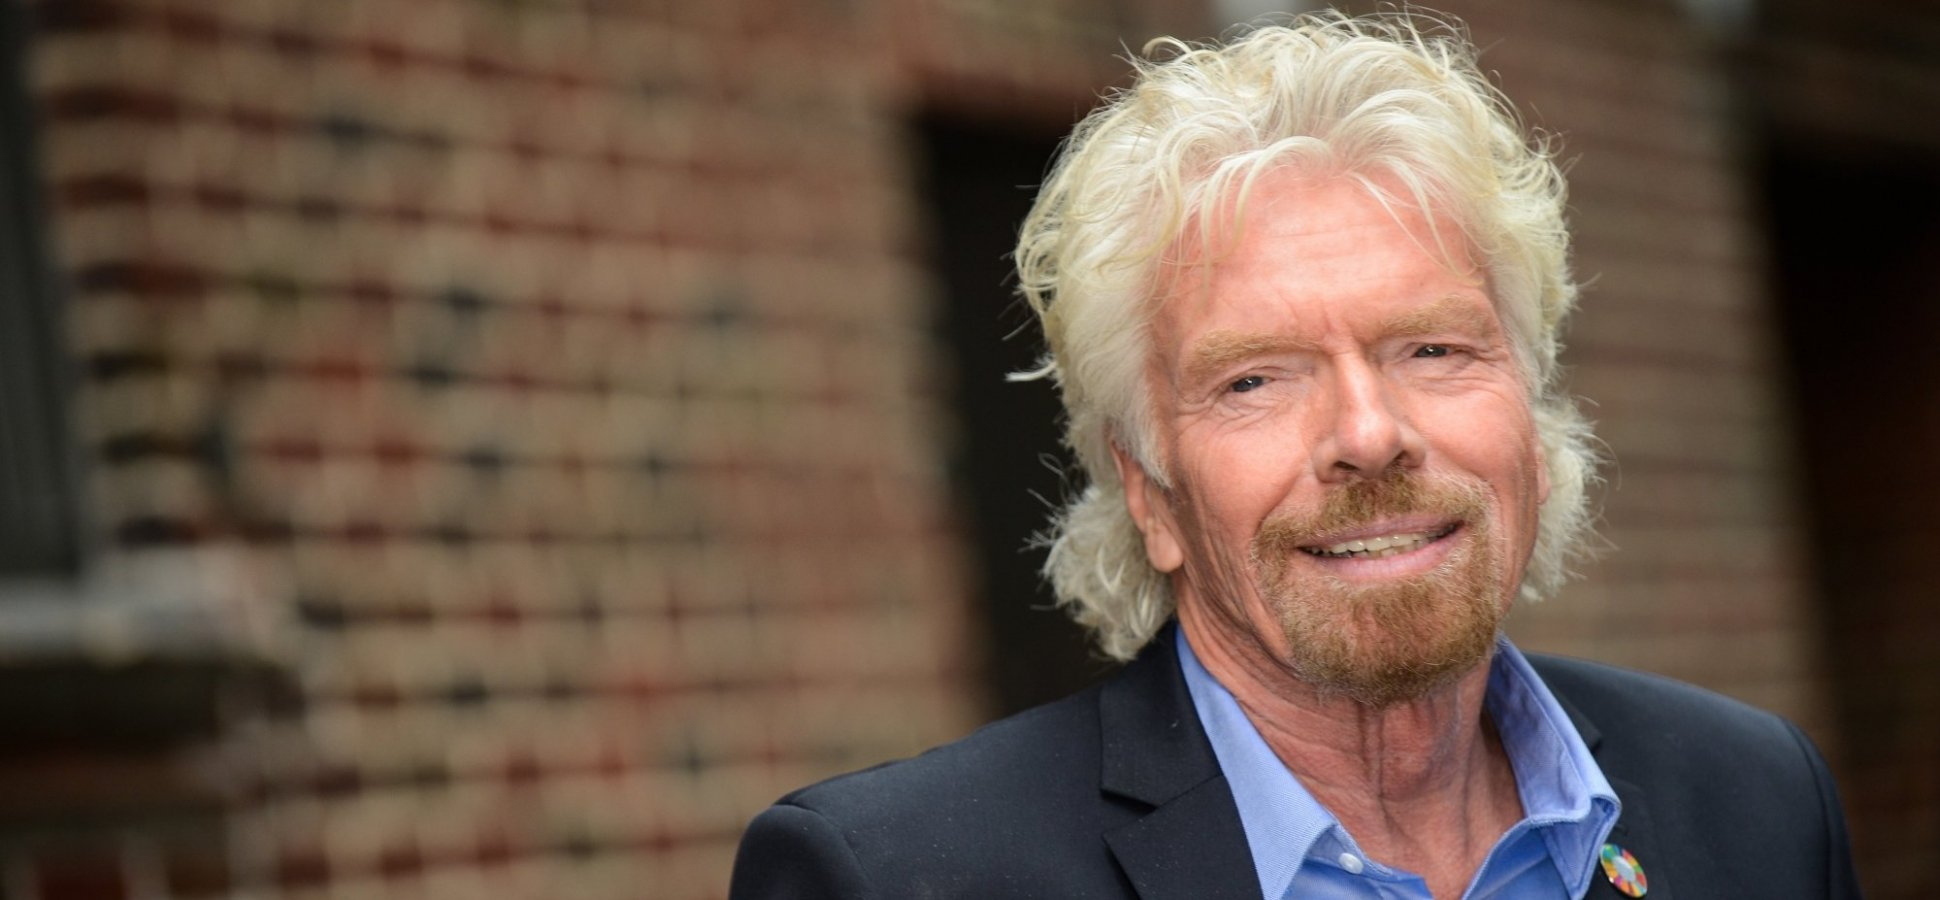 Richard Branson Says You Should Do 3 Things to Achieve More Happiness in 2018